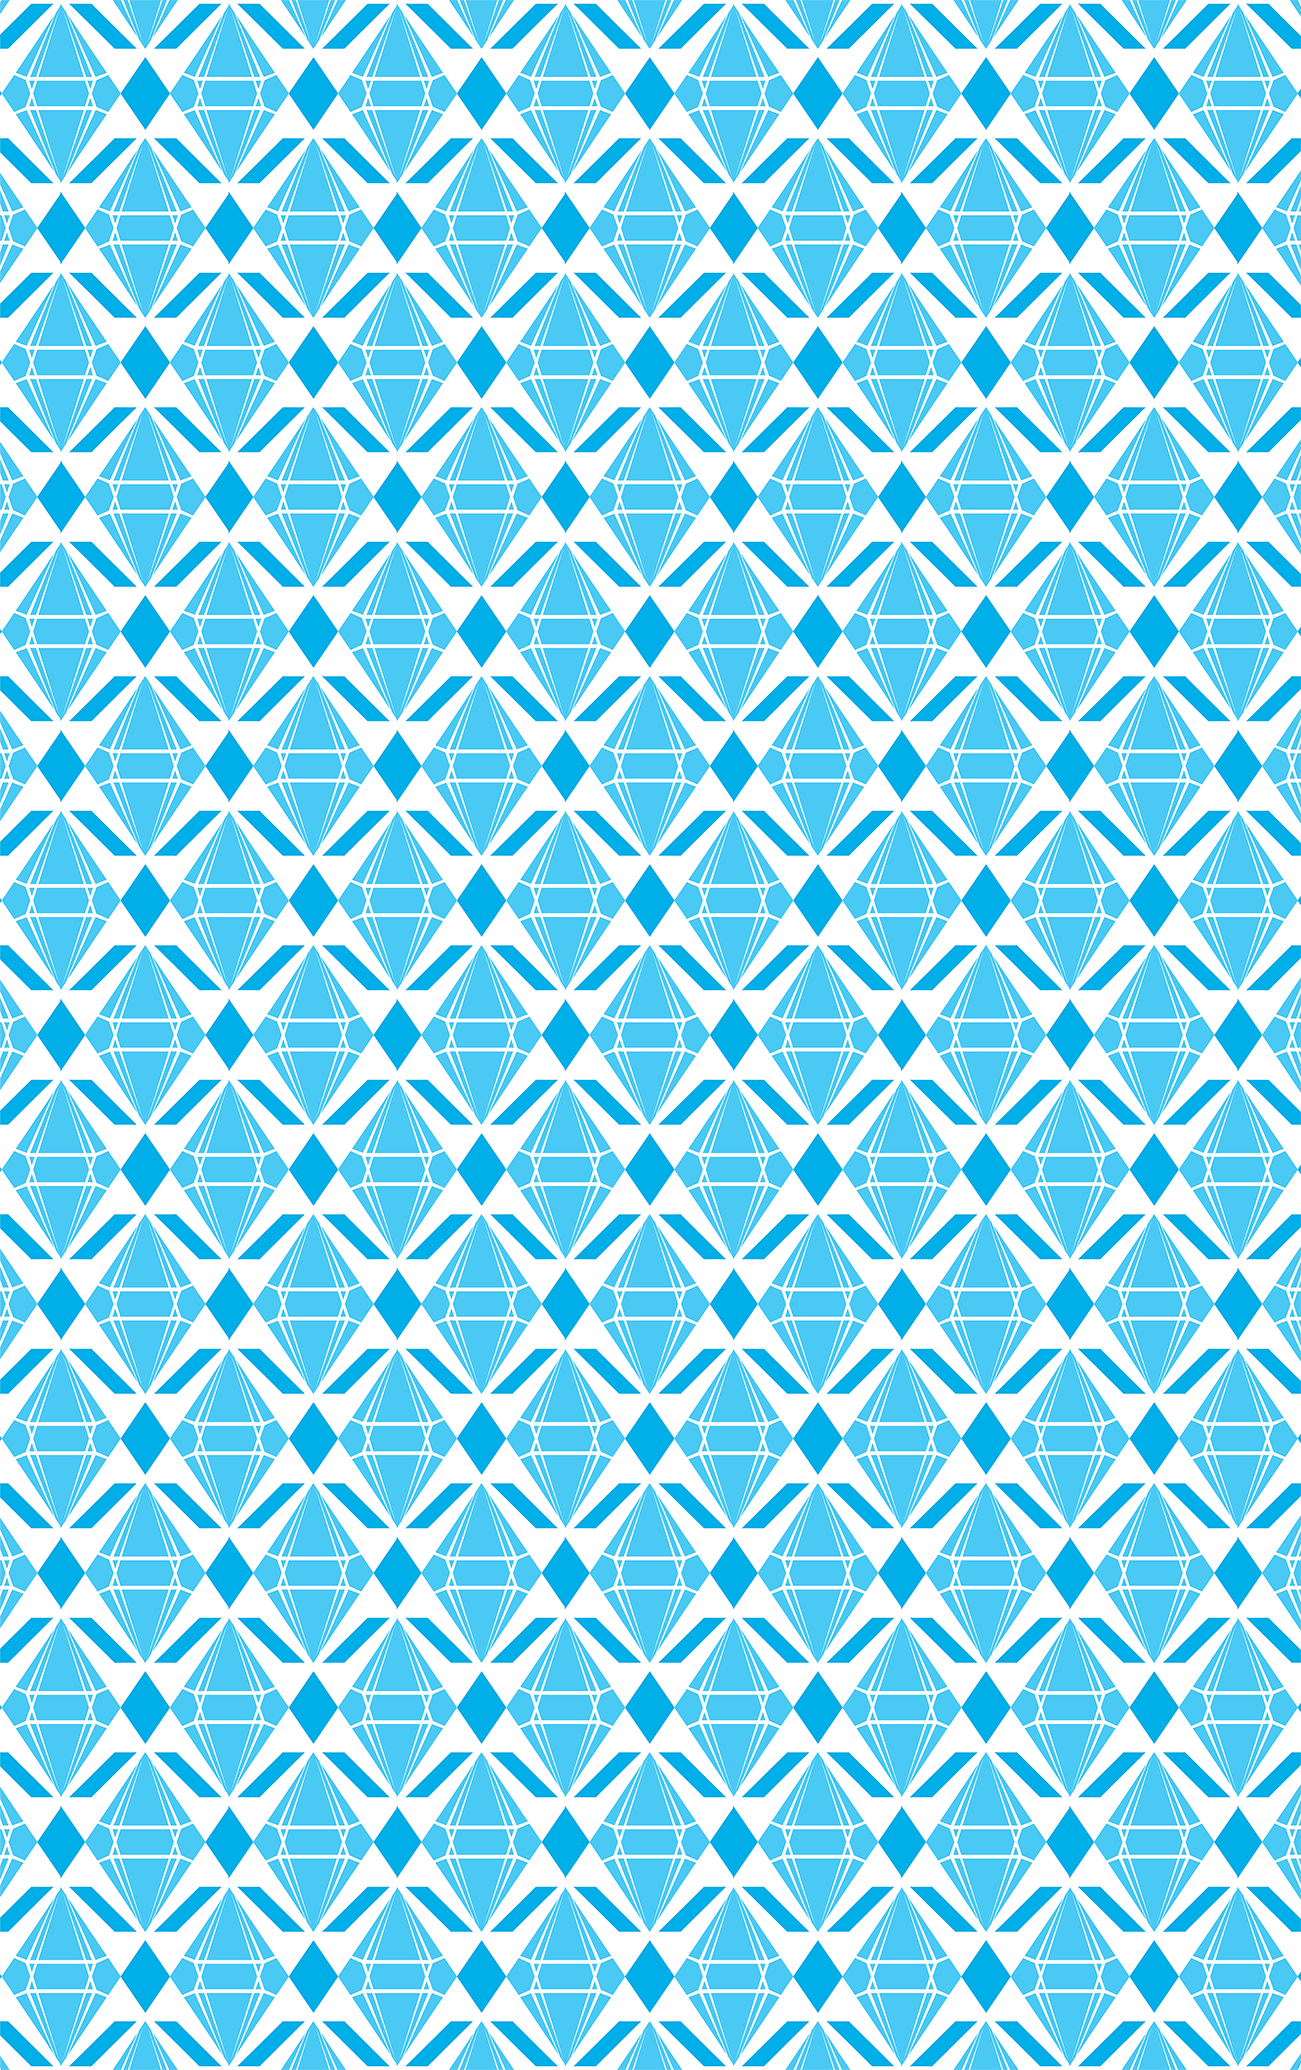 Abstract Emeralds [BLUE] pattern